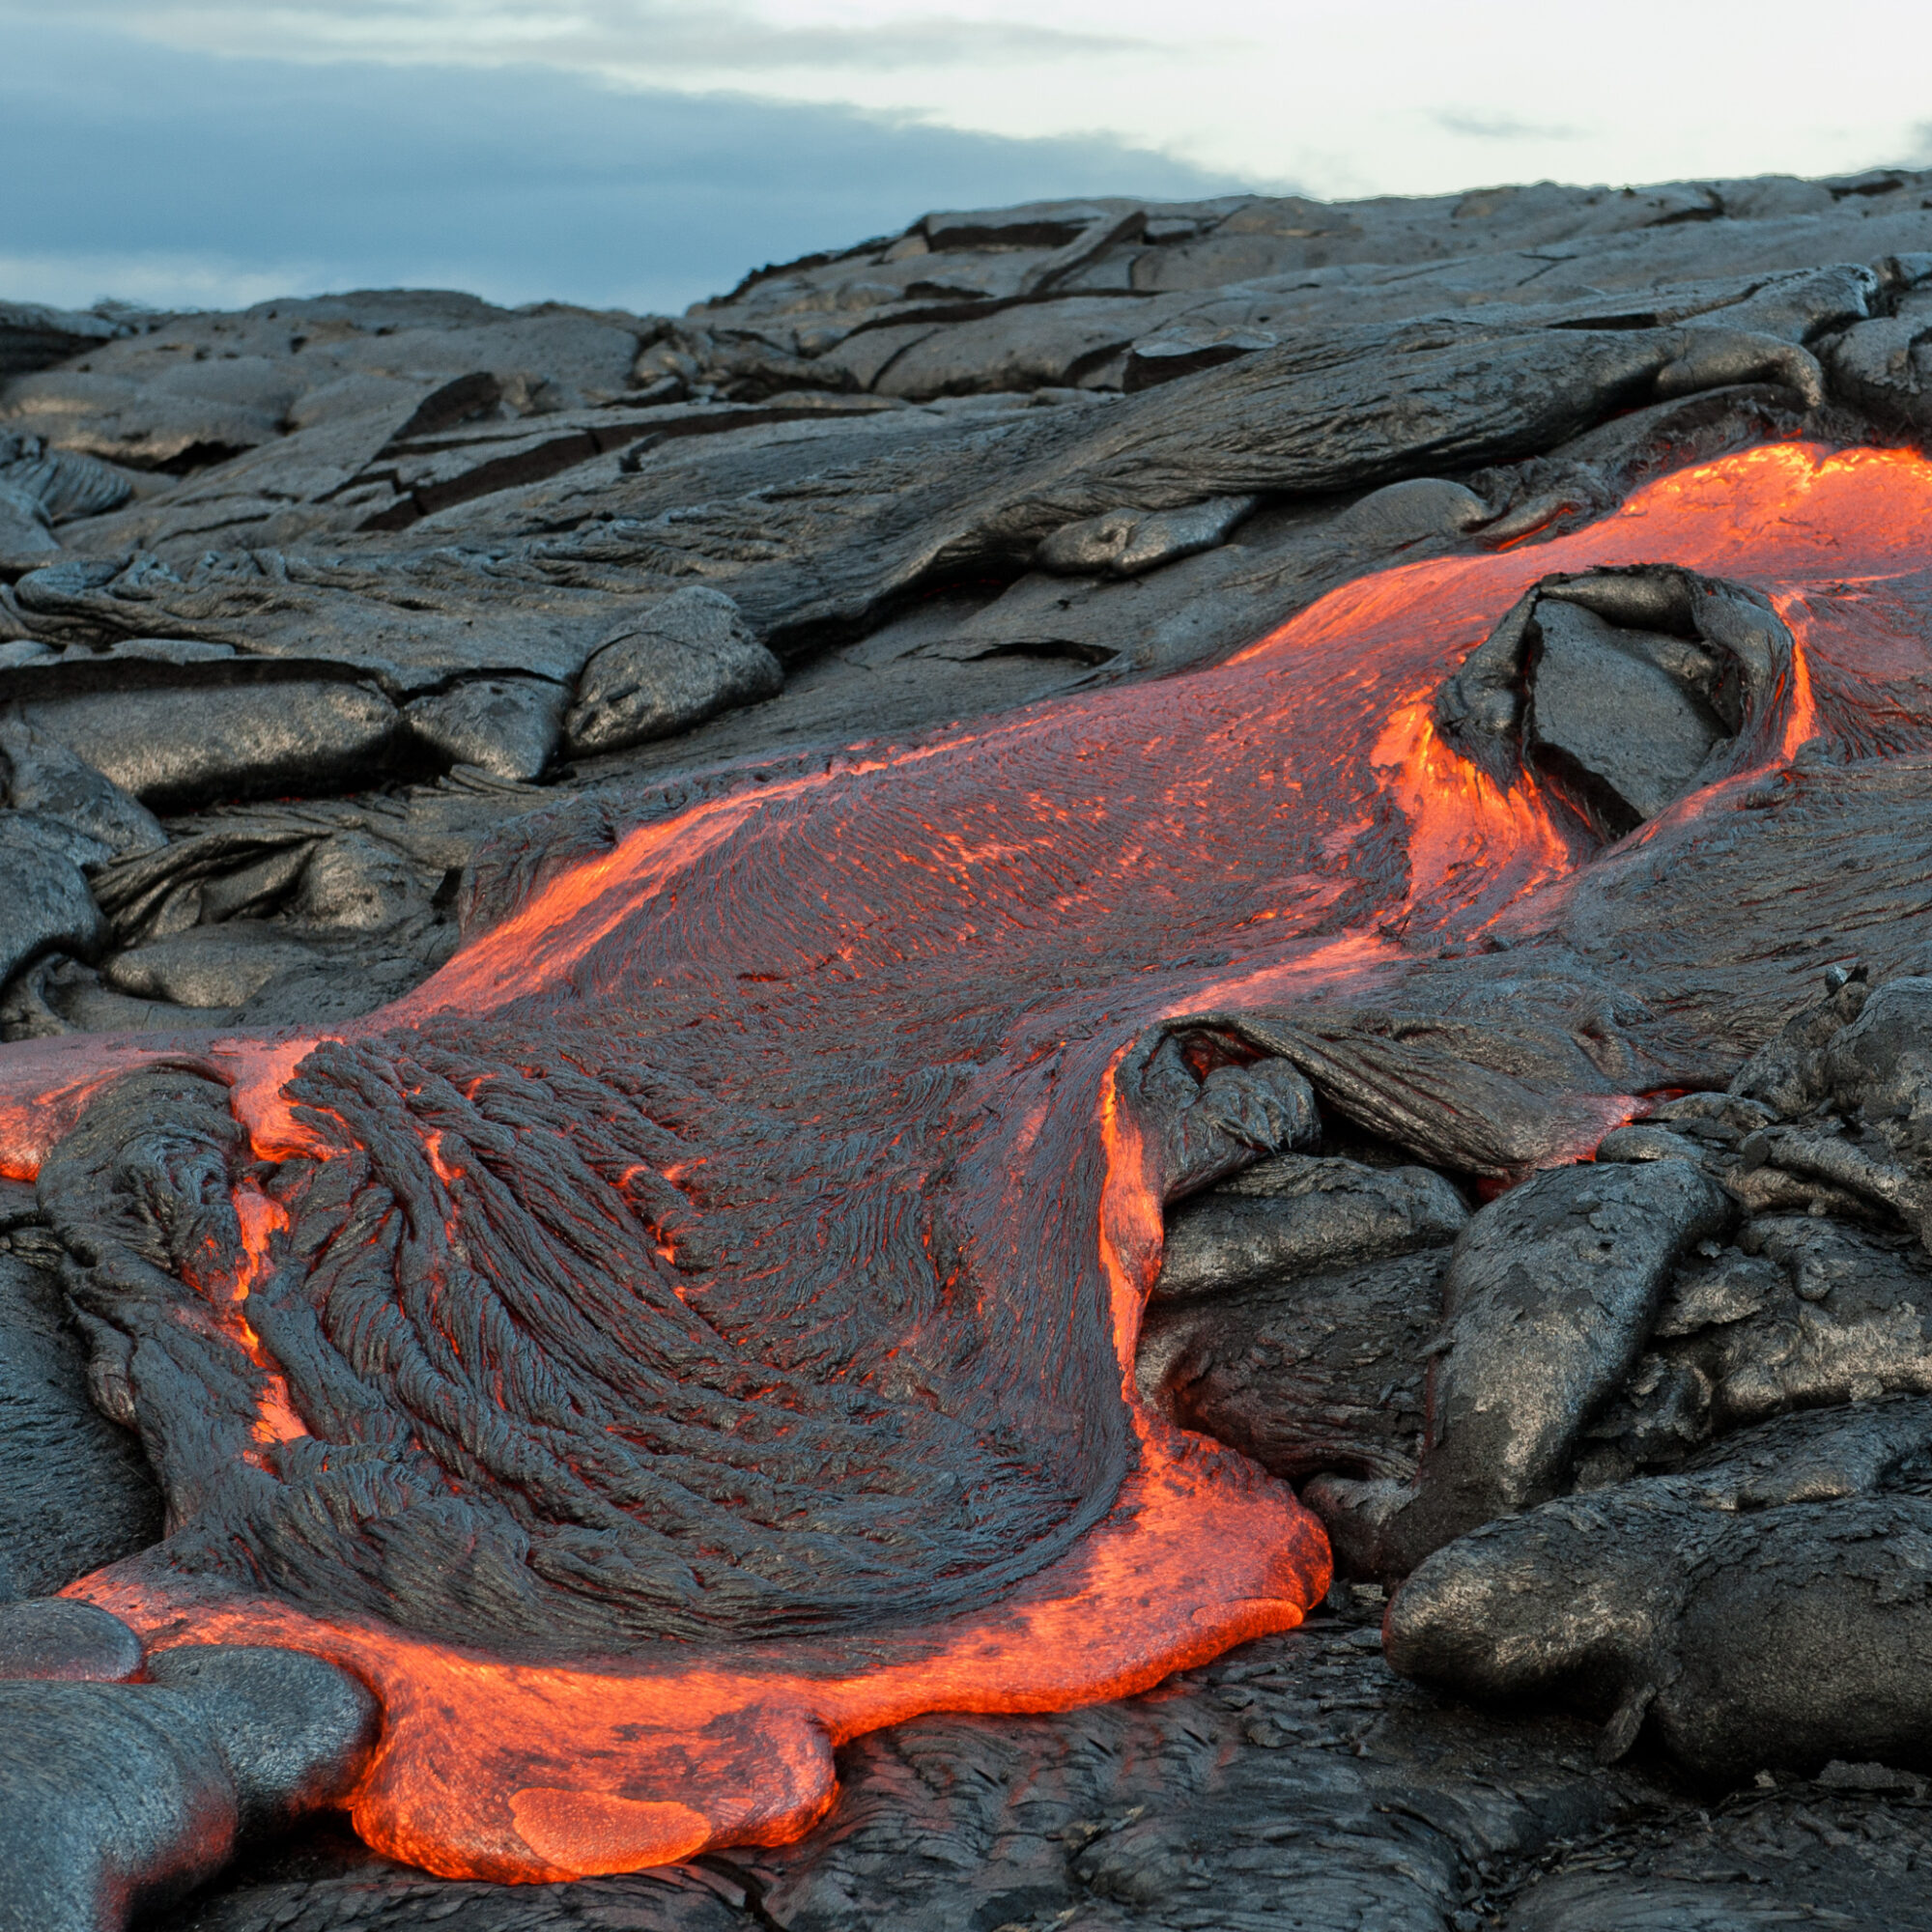 A lava flow in Hawaii Volcanoes National Park.